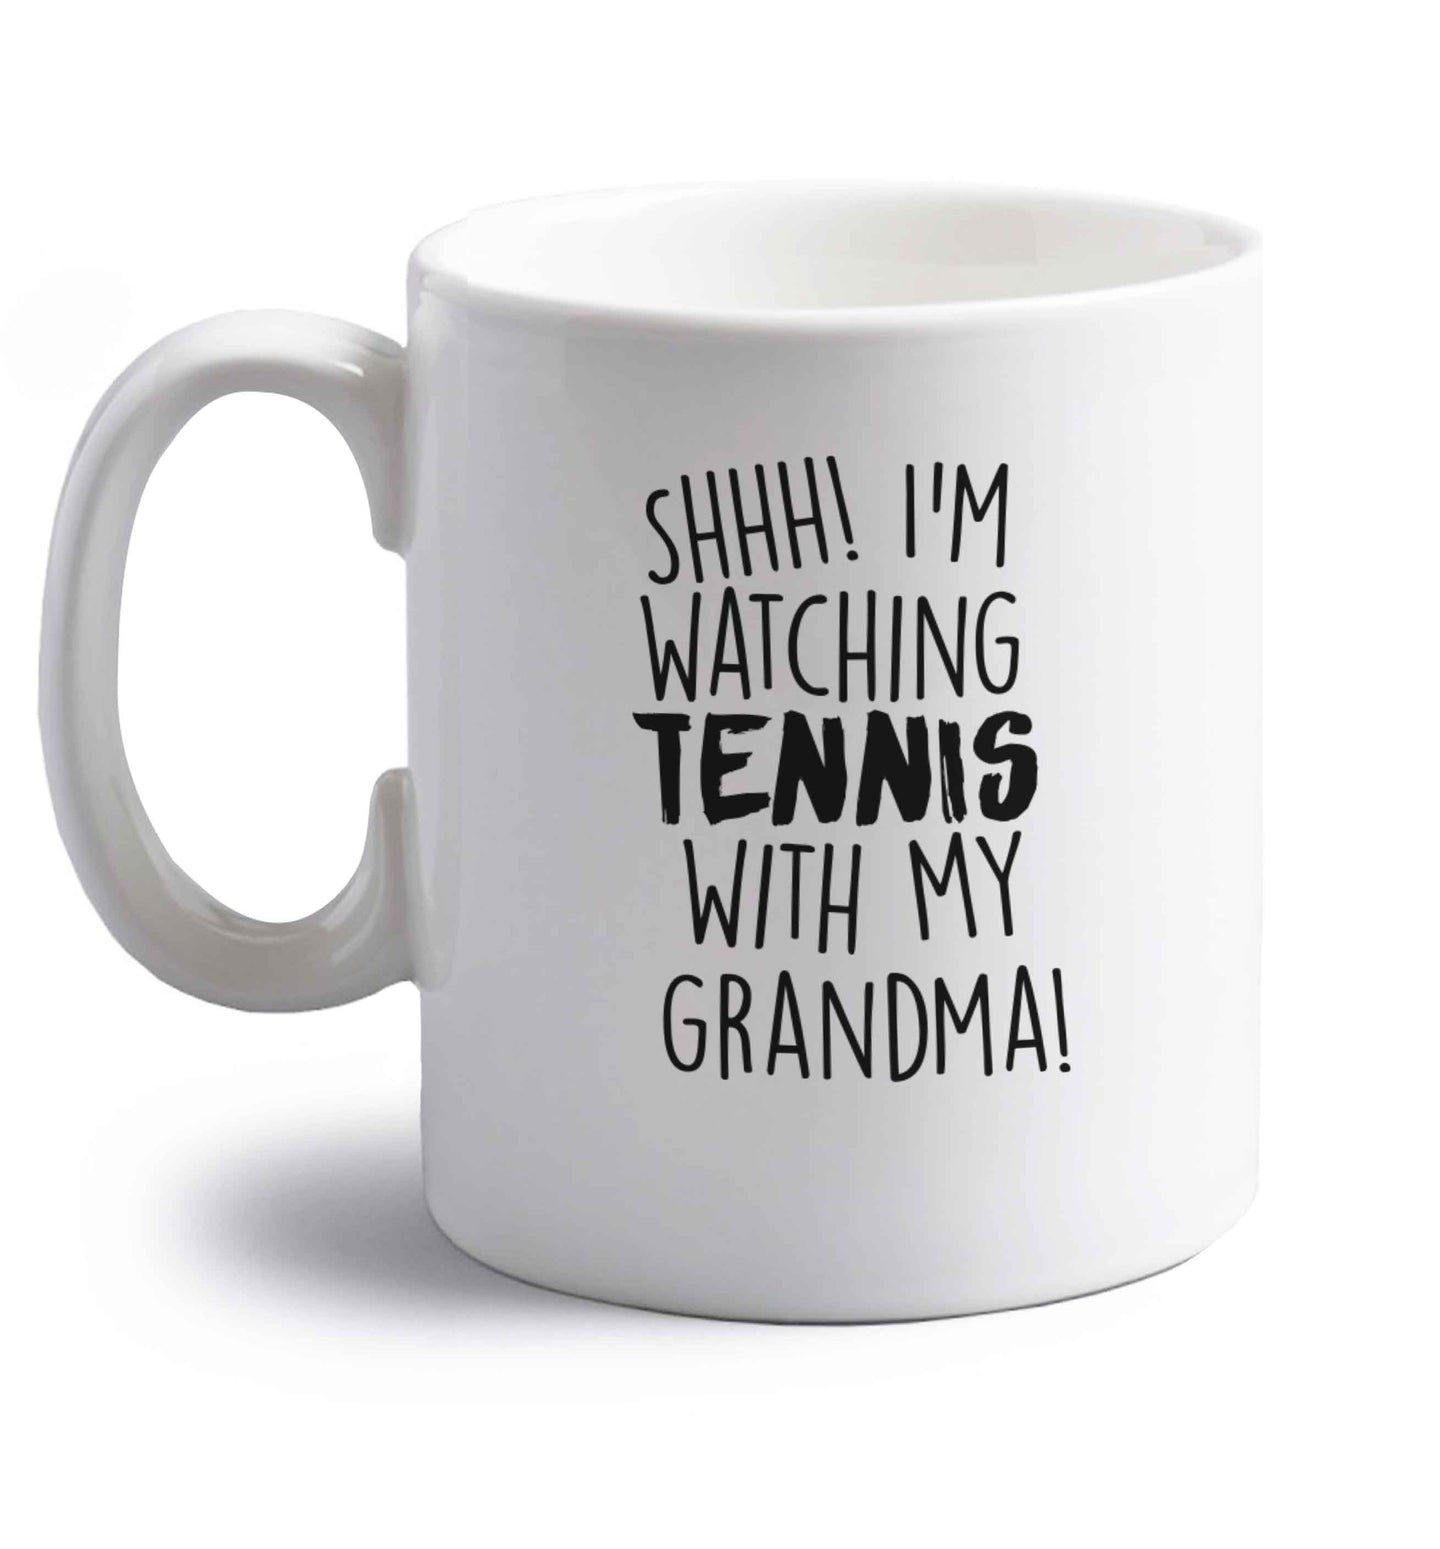 Shh! I'm watching tennis with my grandma! right handed white ceramic mug